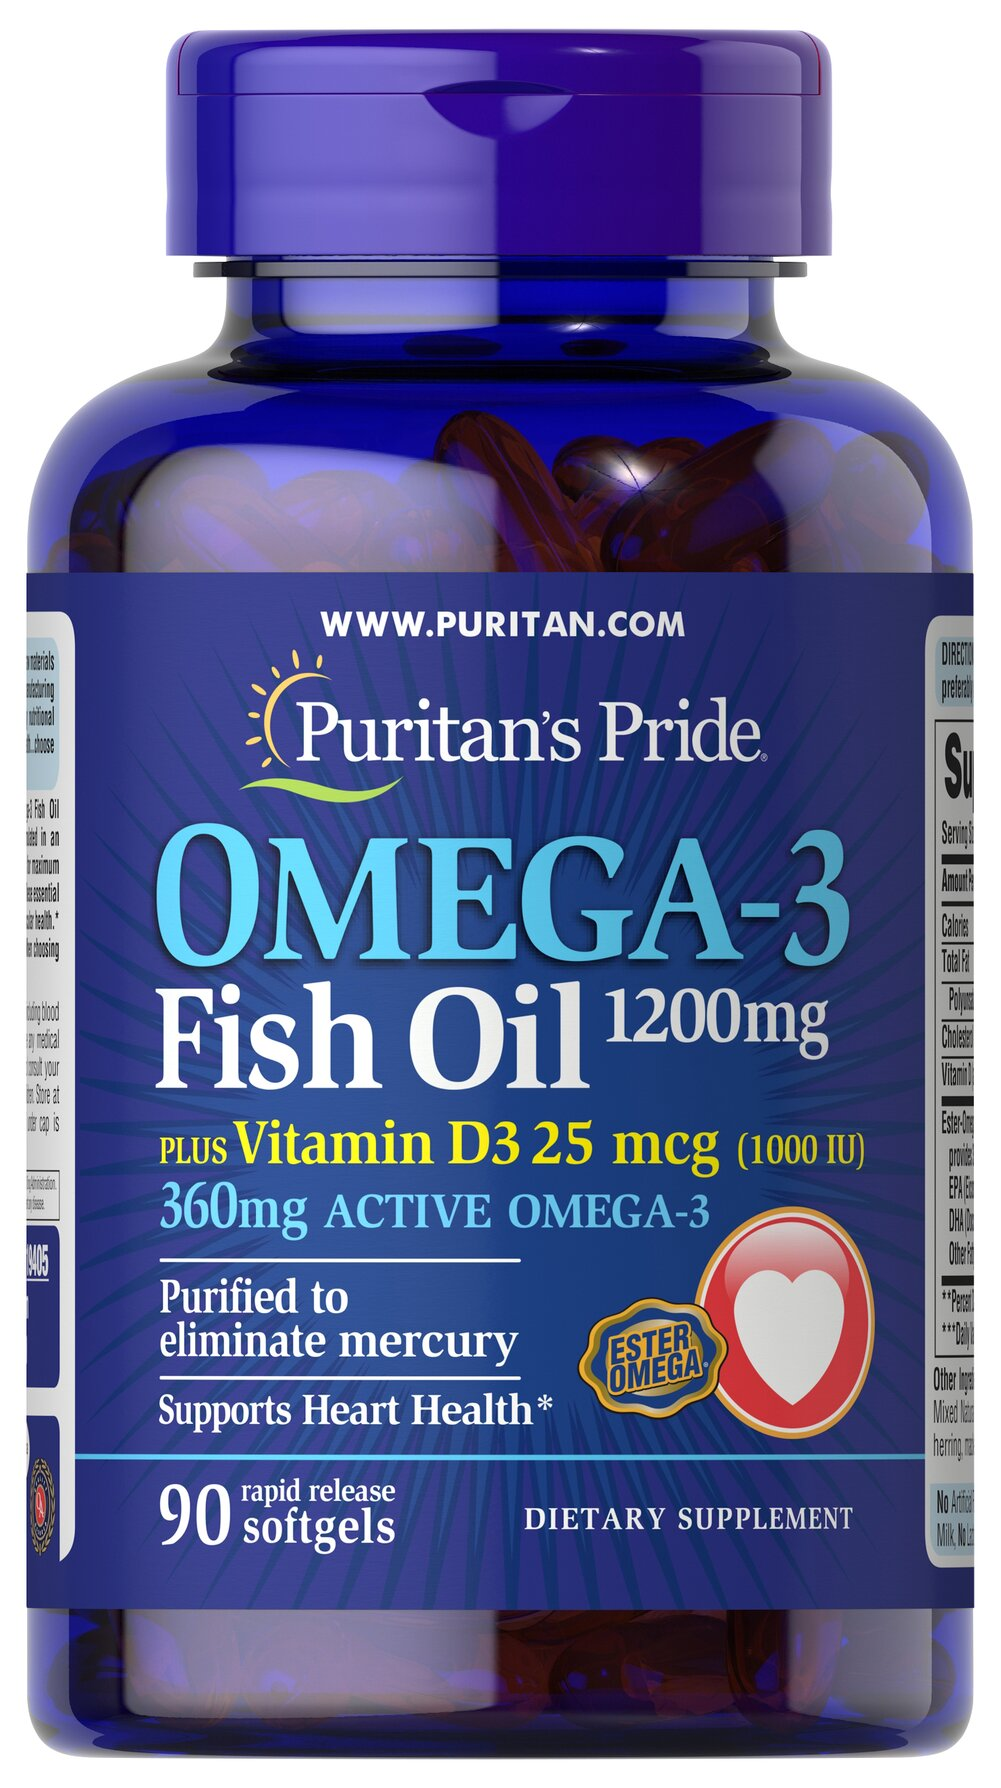 Omega 3 Fish Oil 1200 mg  plus Vitamin D3 1000 IU  90 Softgels 1200 mg/1000 IU $15.99